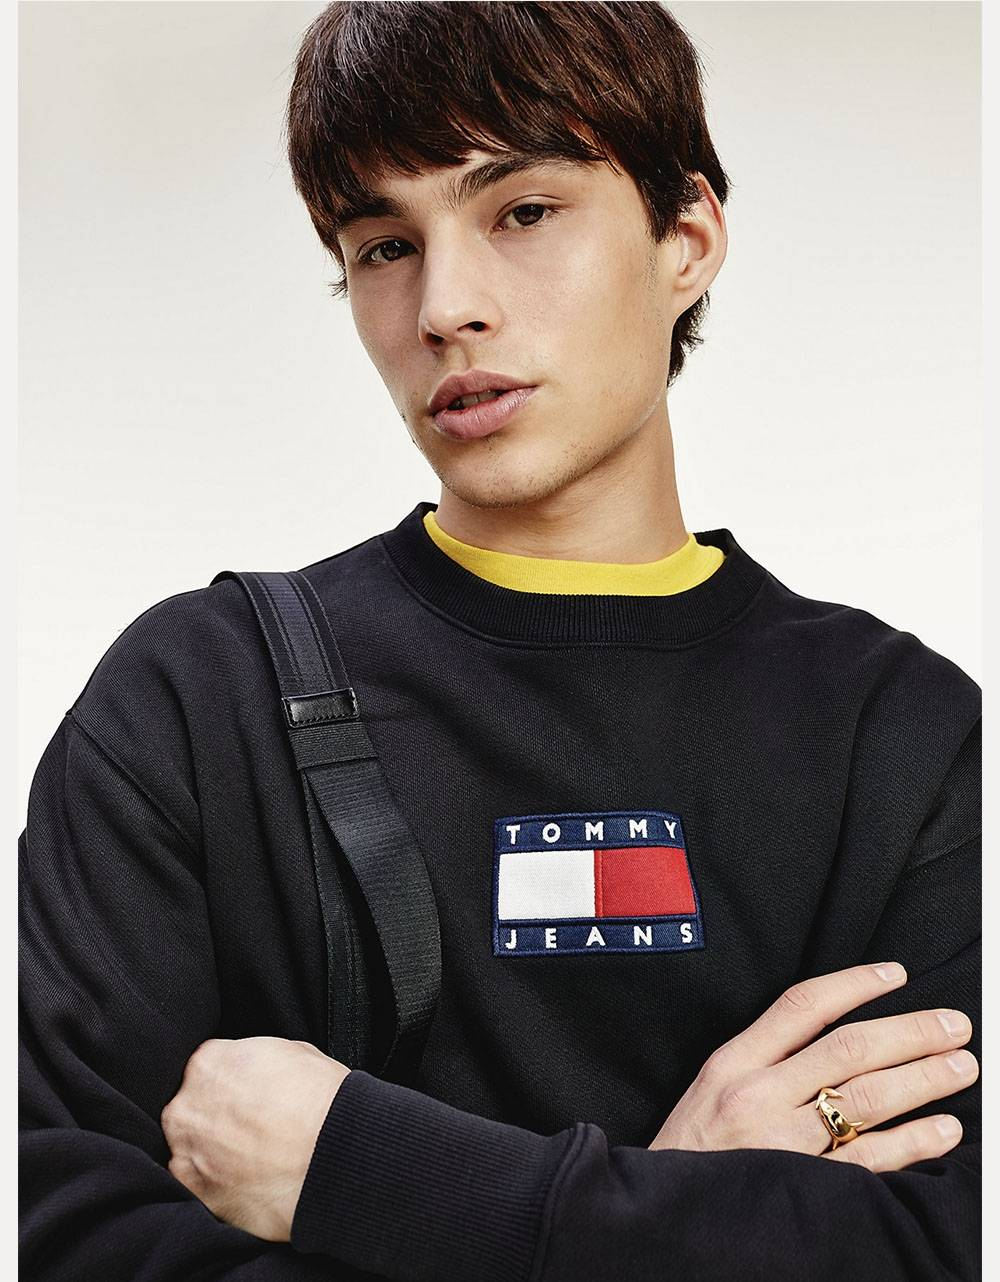 Tommy Jeans small flag crewneck sweater - black Tommy Jeans Sweater 110,66€